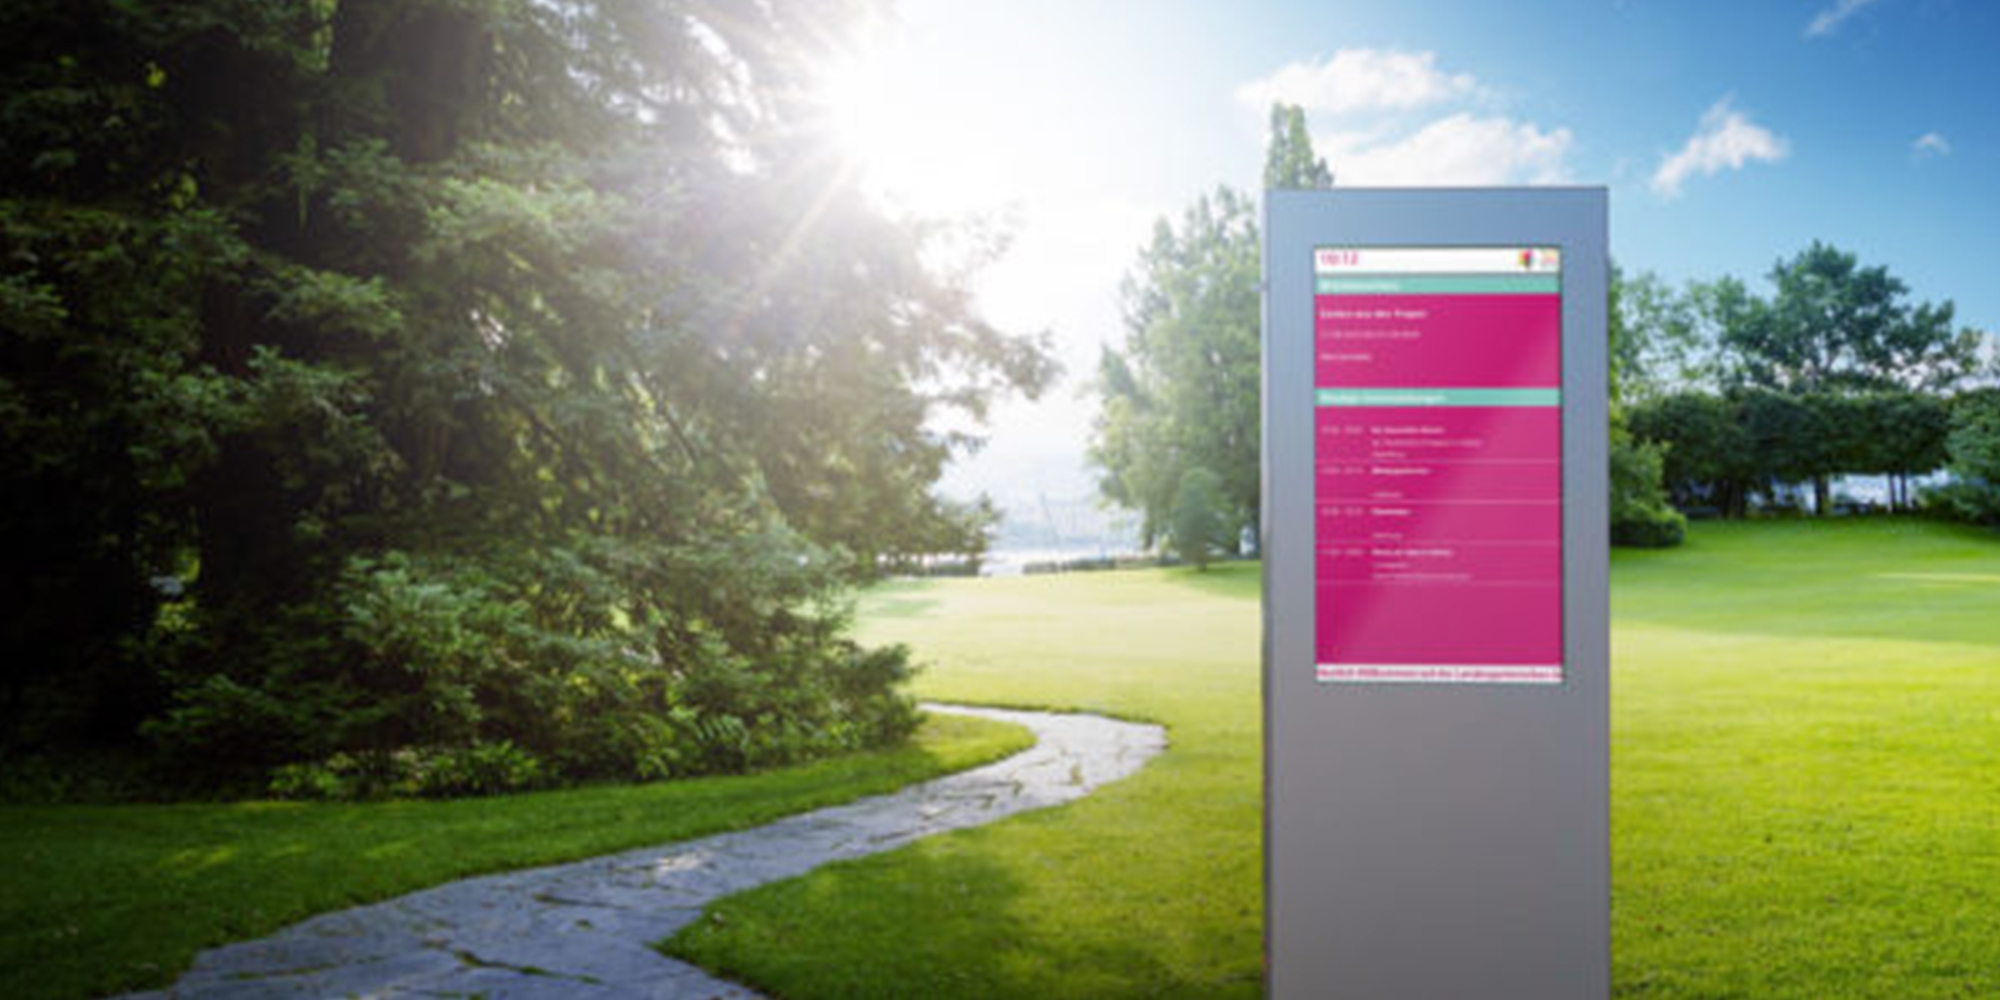 interactive_signage_outdoor_preview-e1620657740627-large